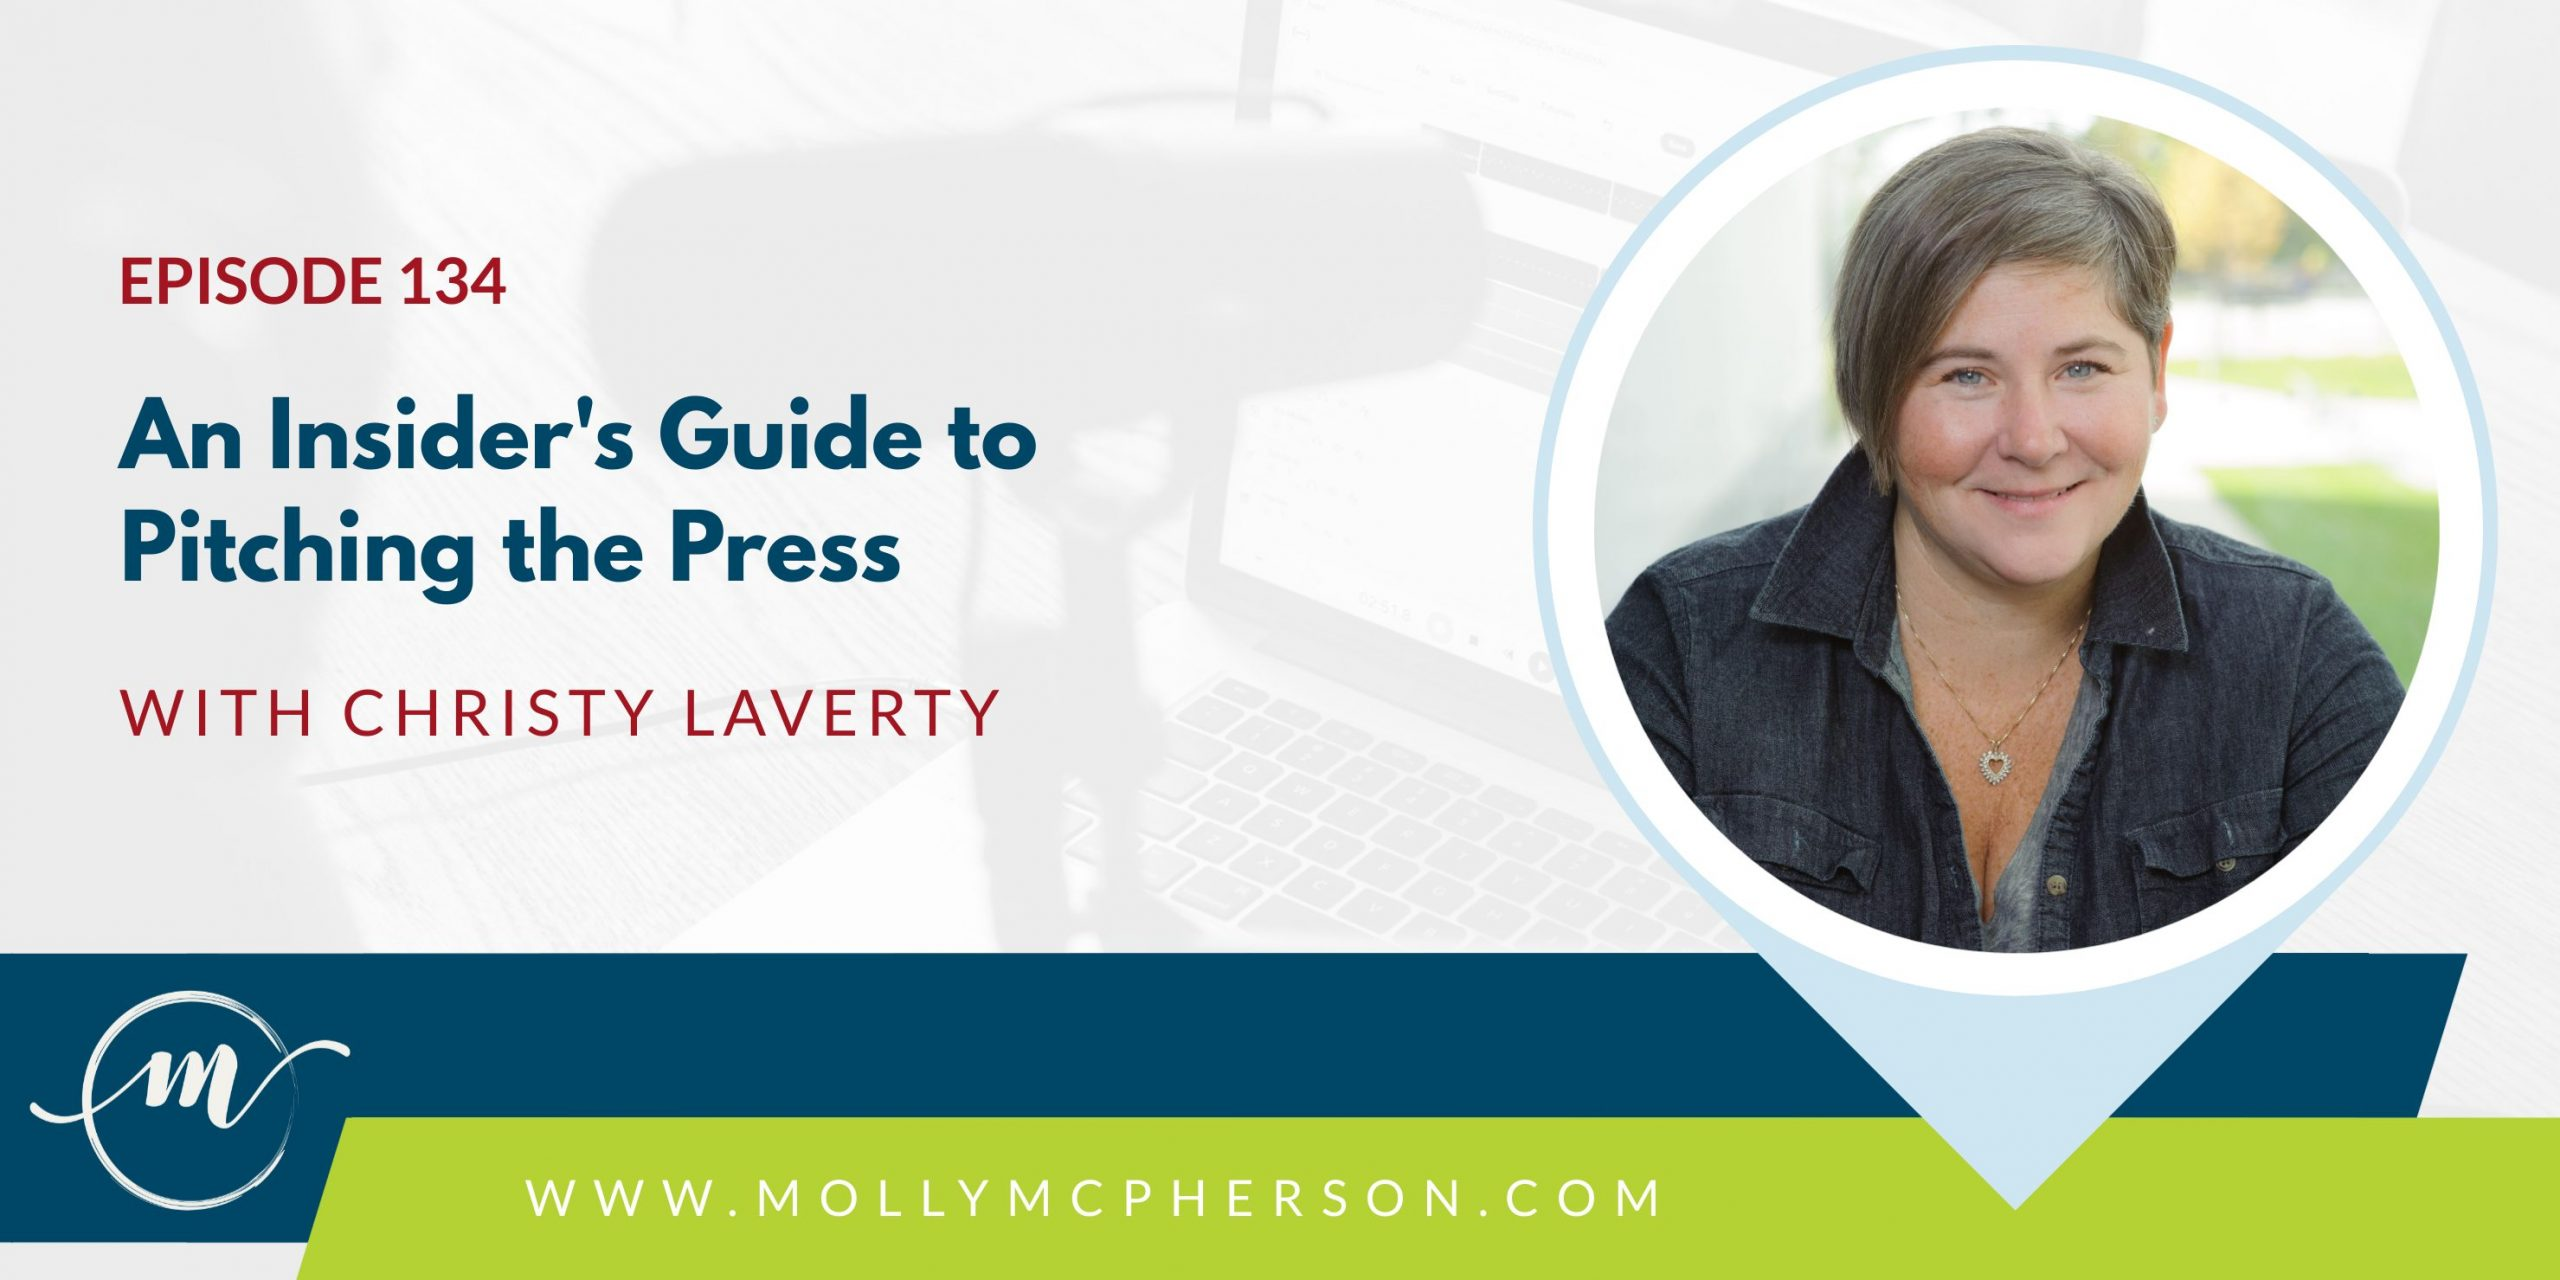 Ep. 134: An Insider's Guide to Pitching the Press with Christy Laverty